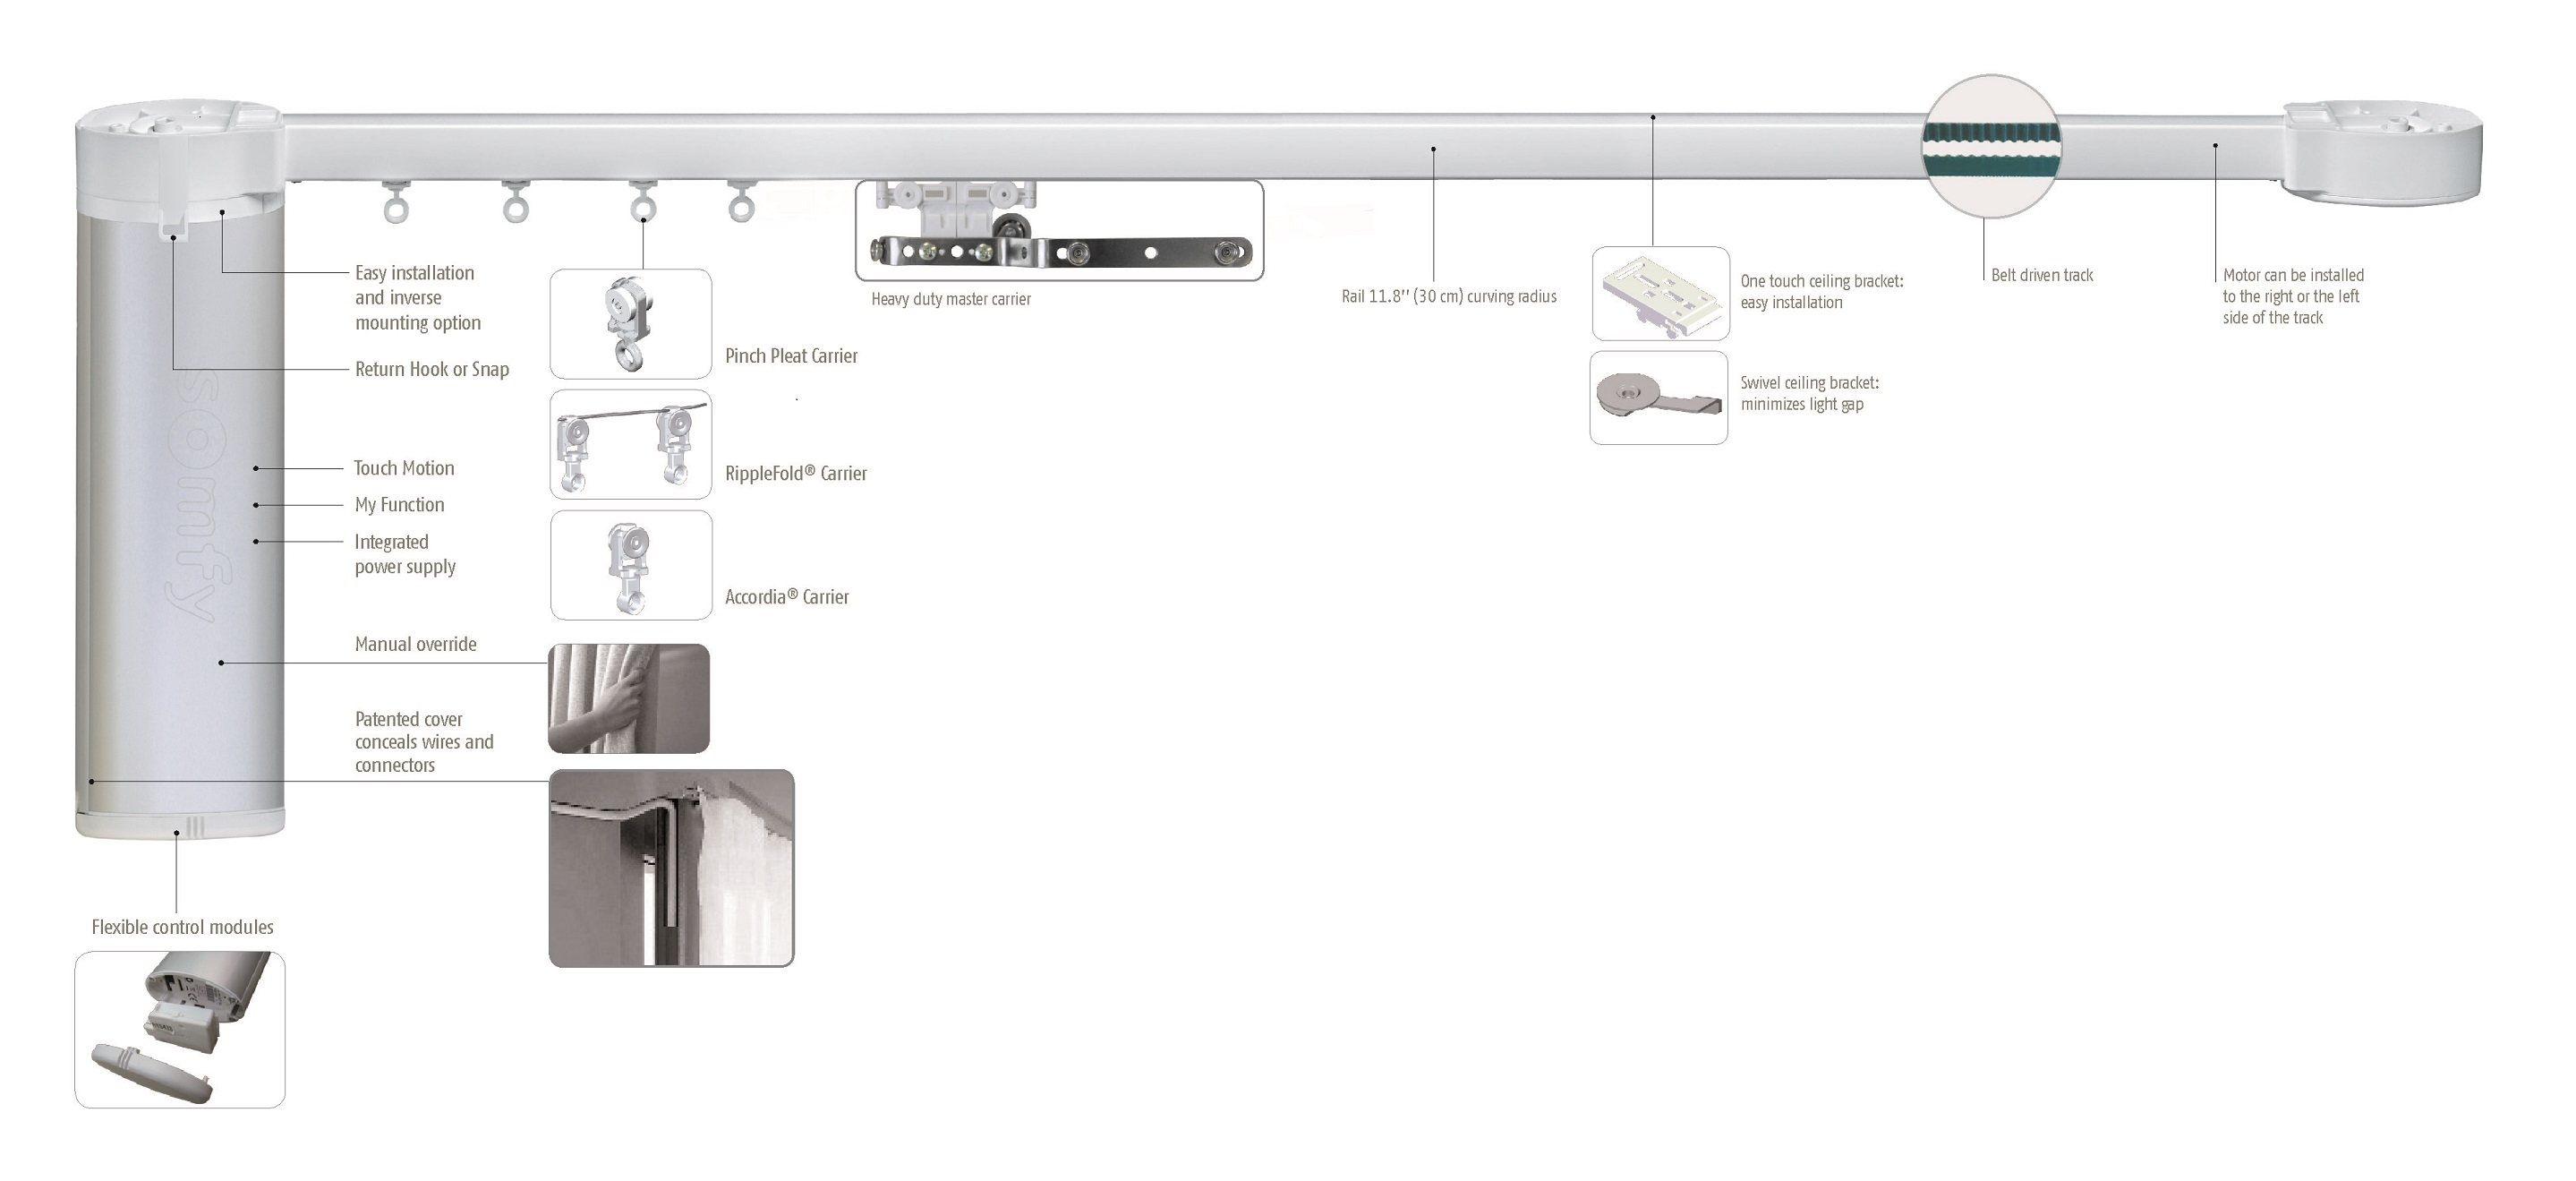 somfy dpdt switch wiring diagram index listing of wiring diagrams